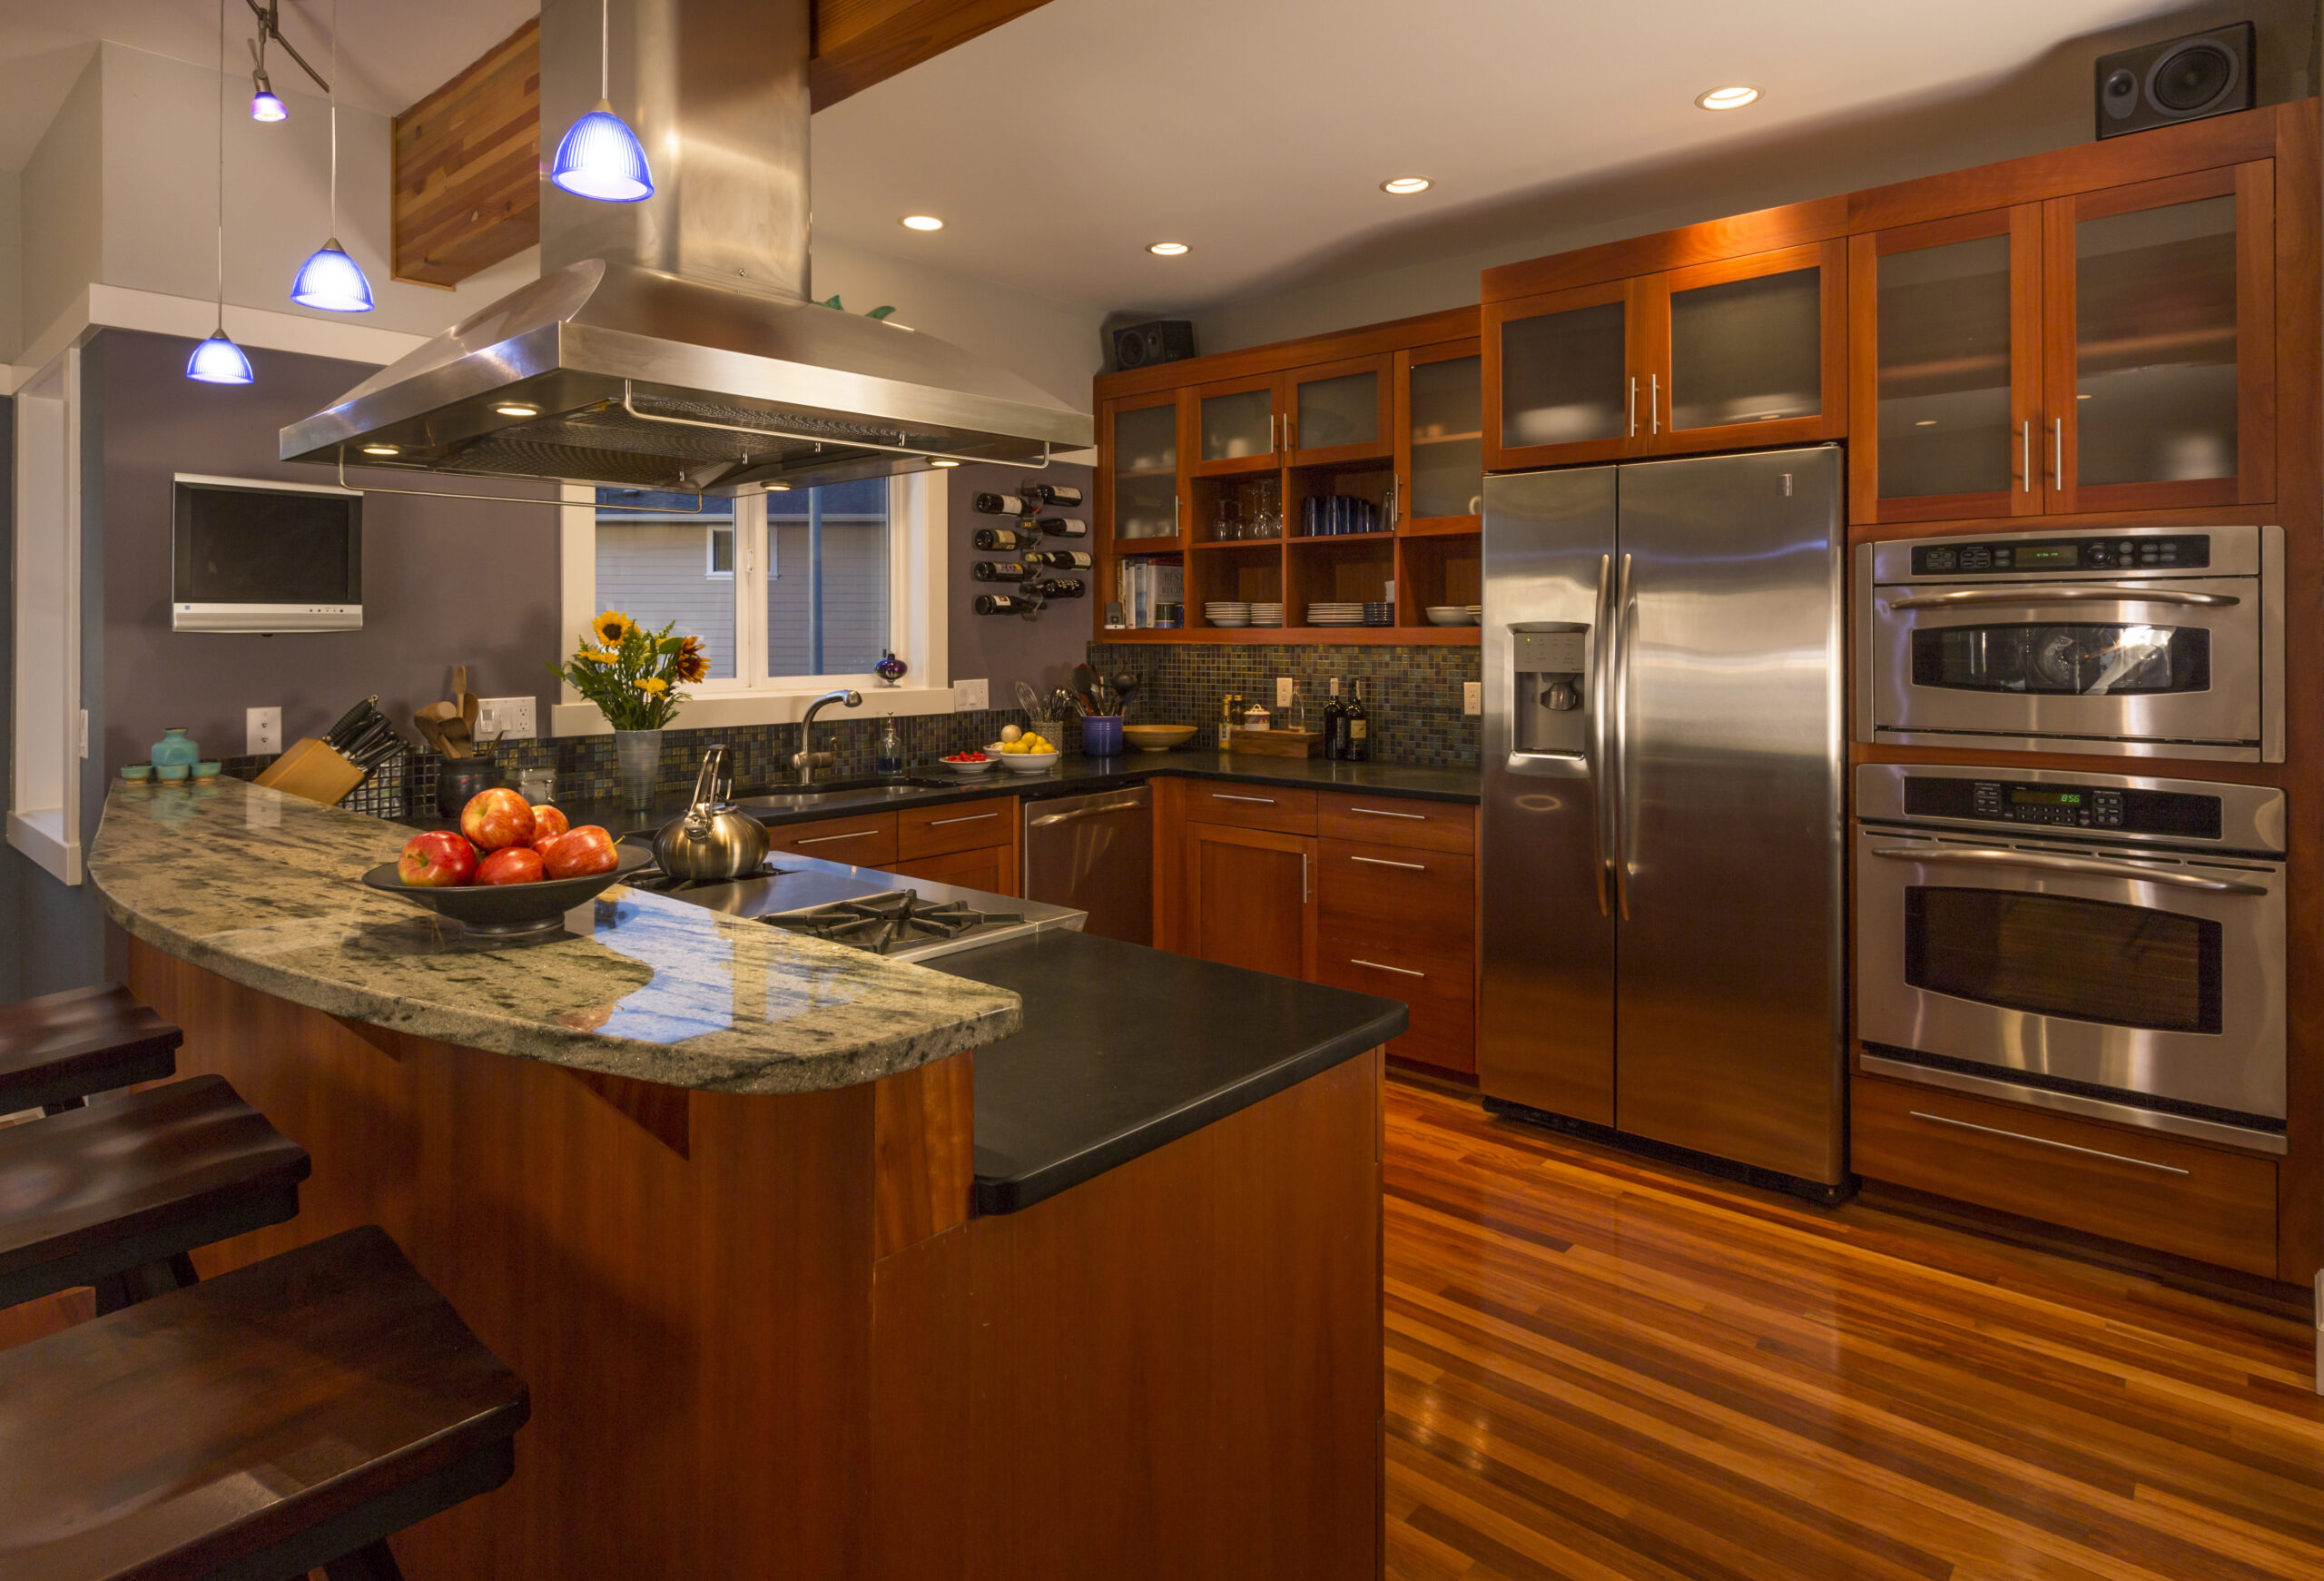 Custom Kitchen Cabinets to Suit Your